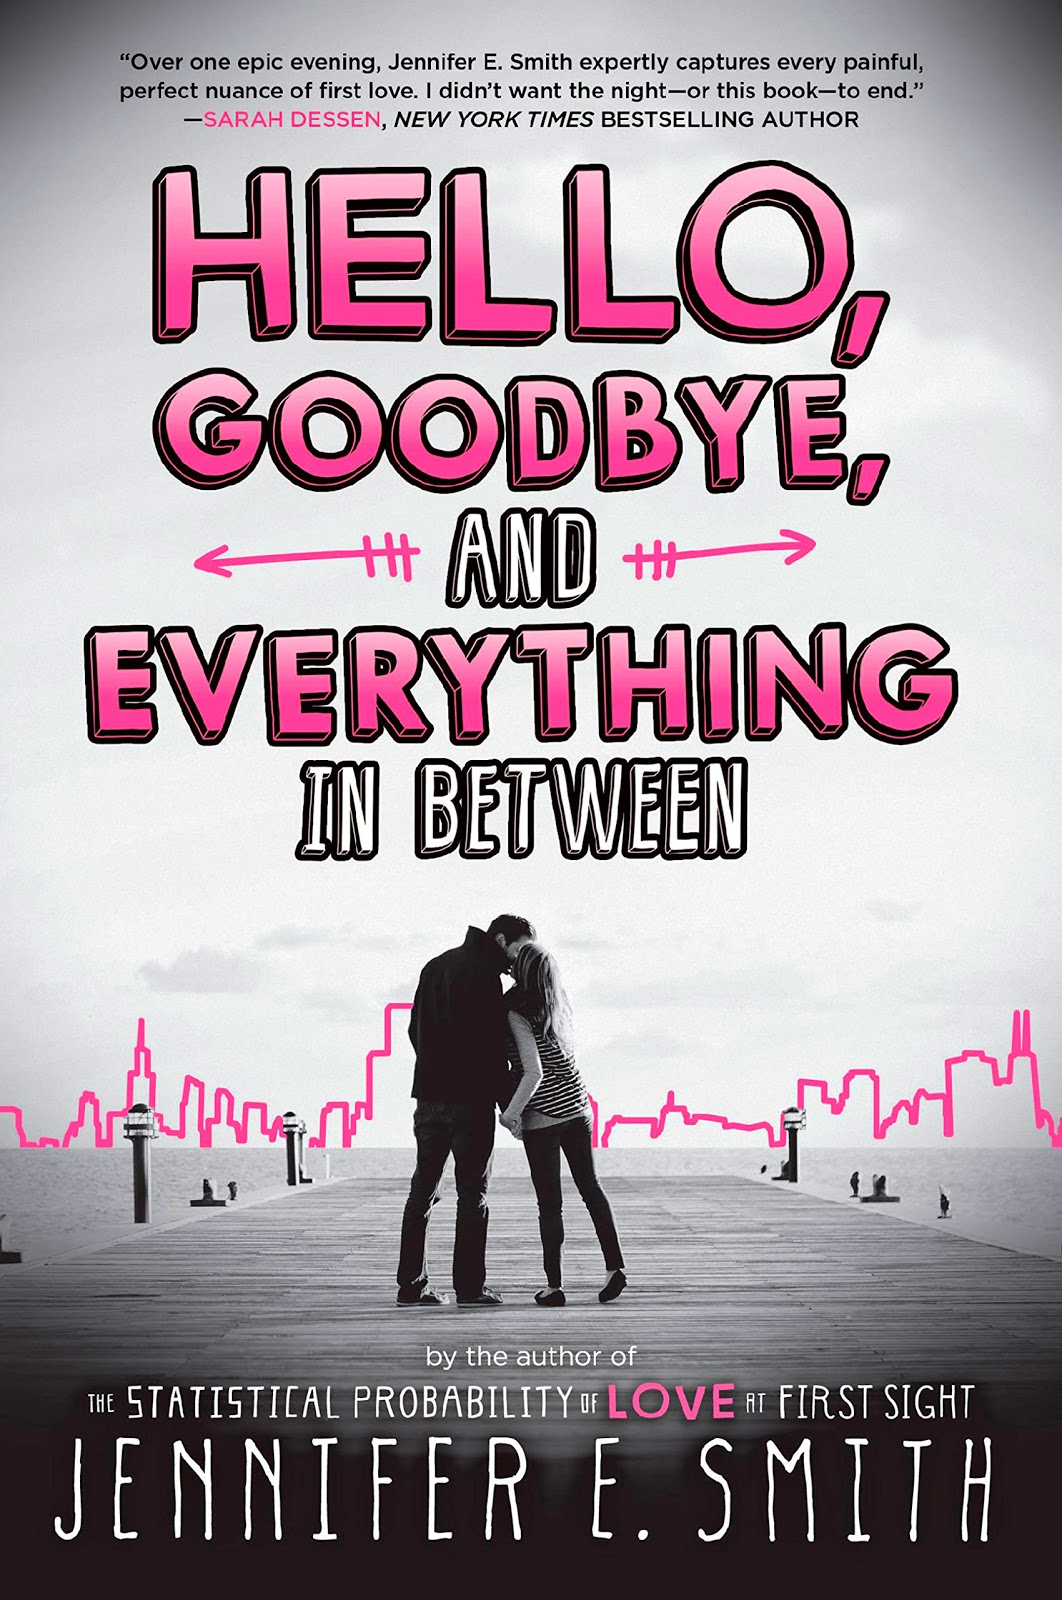 Hello, Goodbye, and Everything in Between (Jennifer E. Smith)